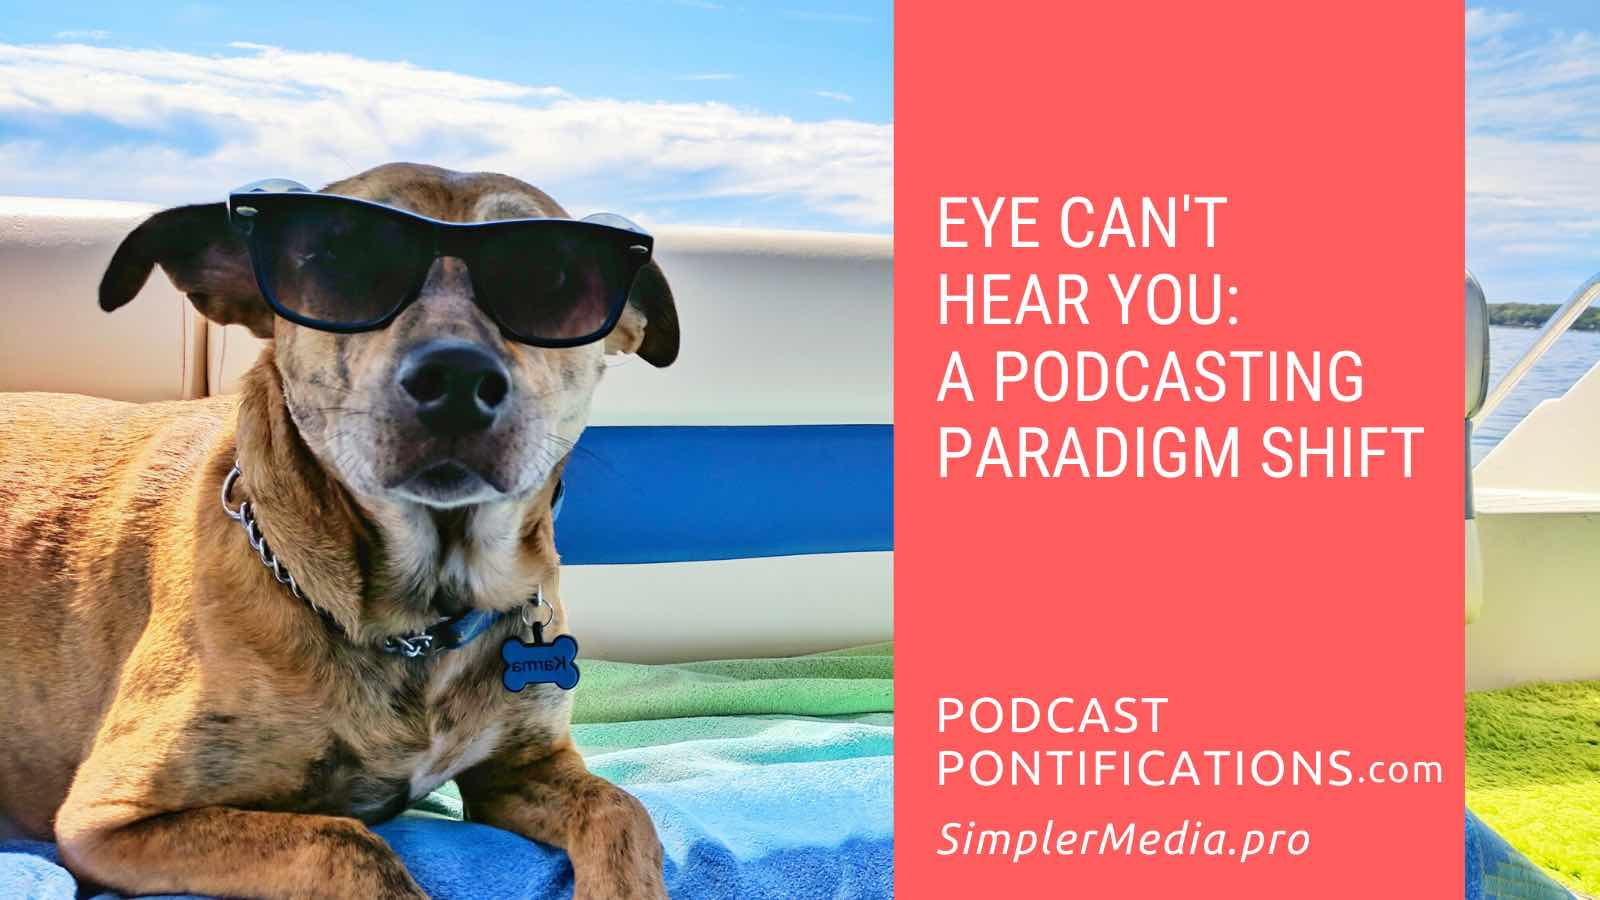 Eye Can't Hear You: A Podcasting Paradigm Shift